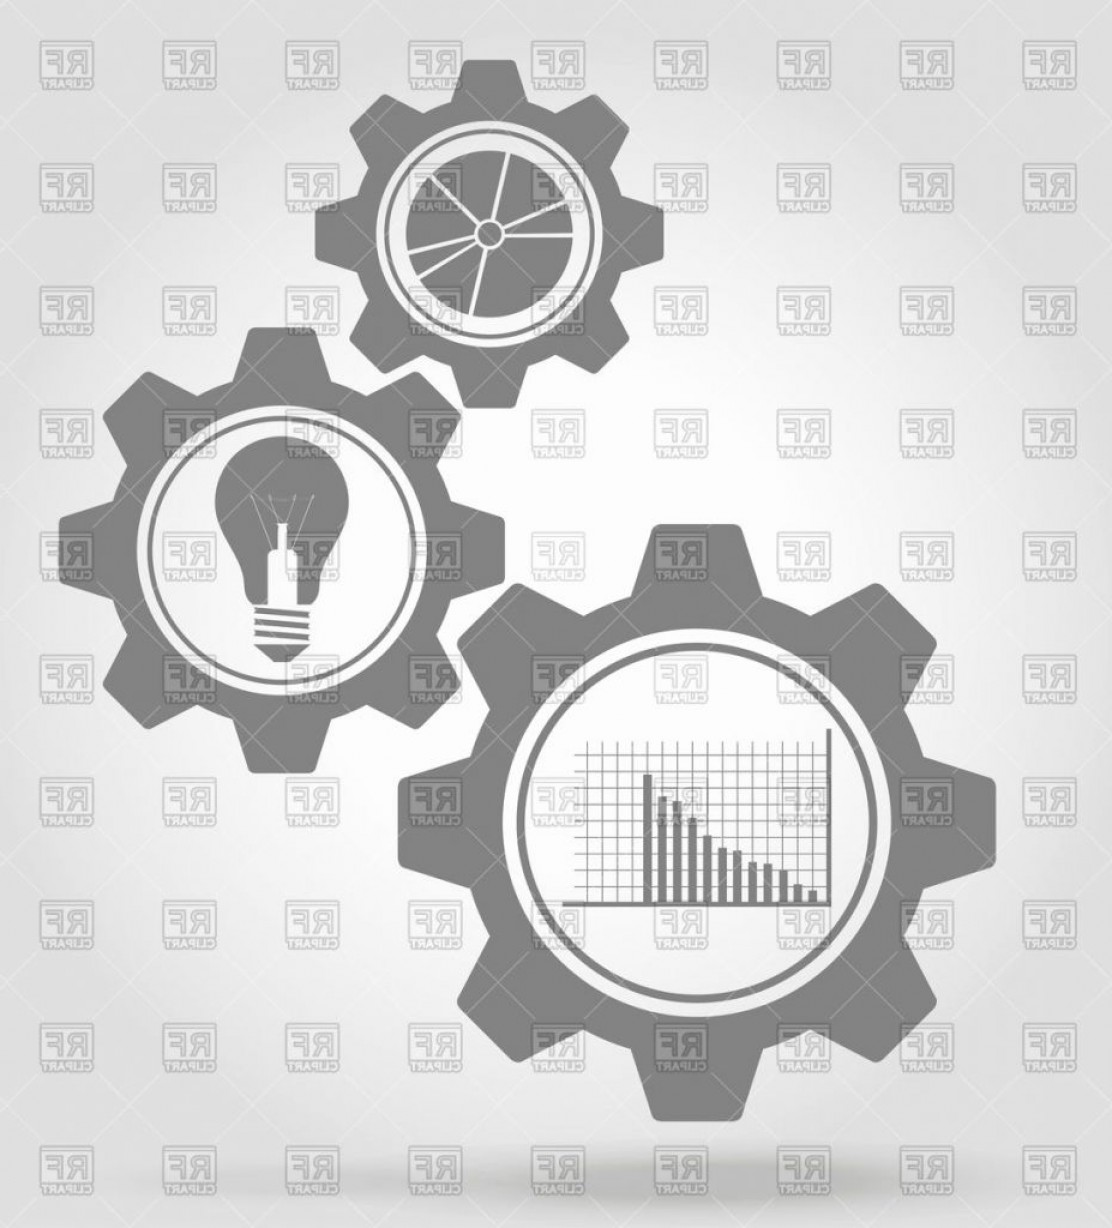 Gear Vector Icons Large: Gear Vector Luxury Business Gear Mechanism Flat Icons Vector Image Vector Artwork Of